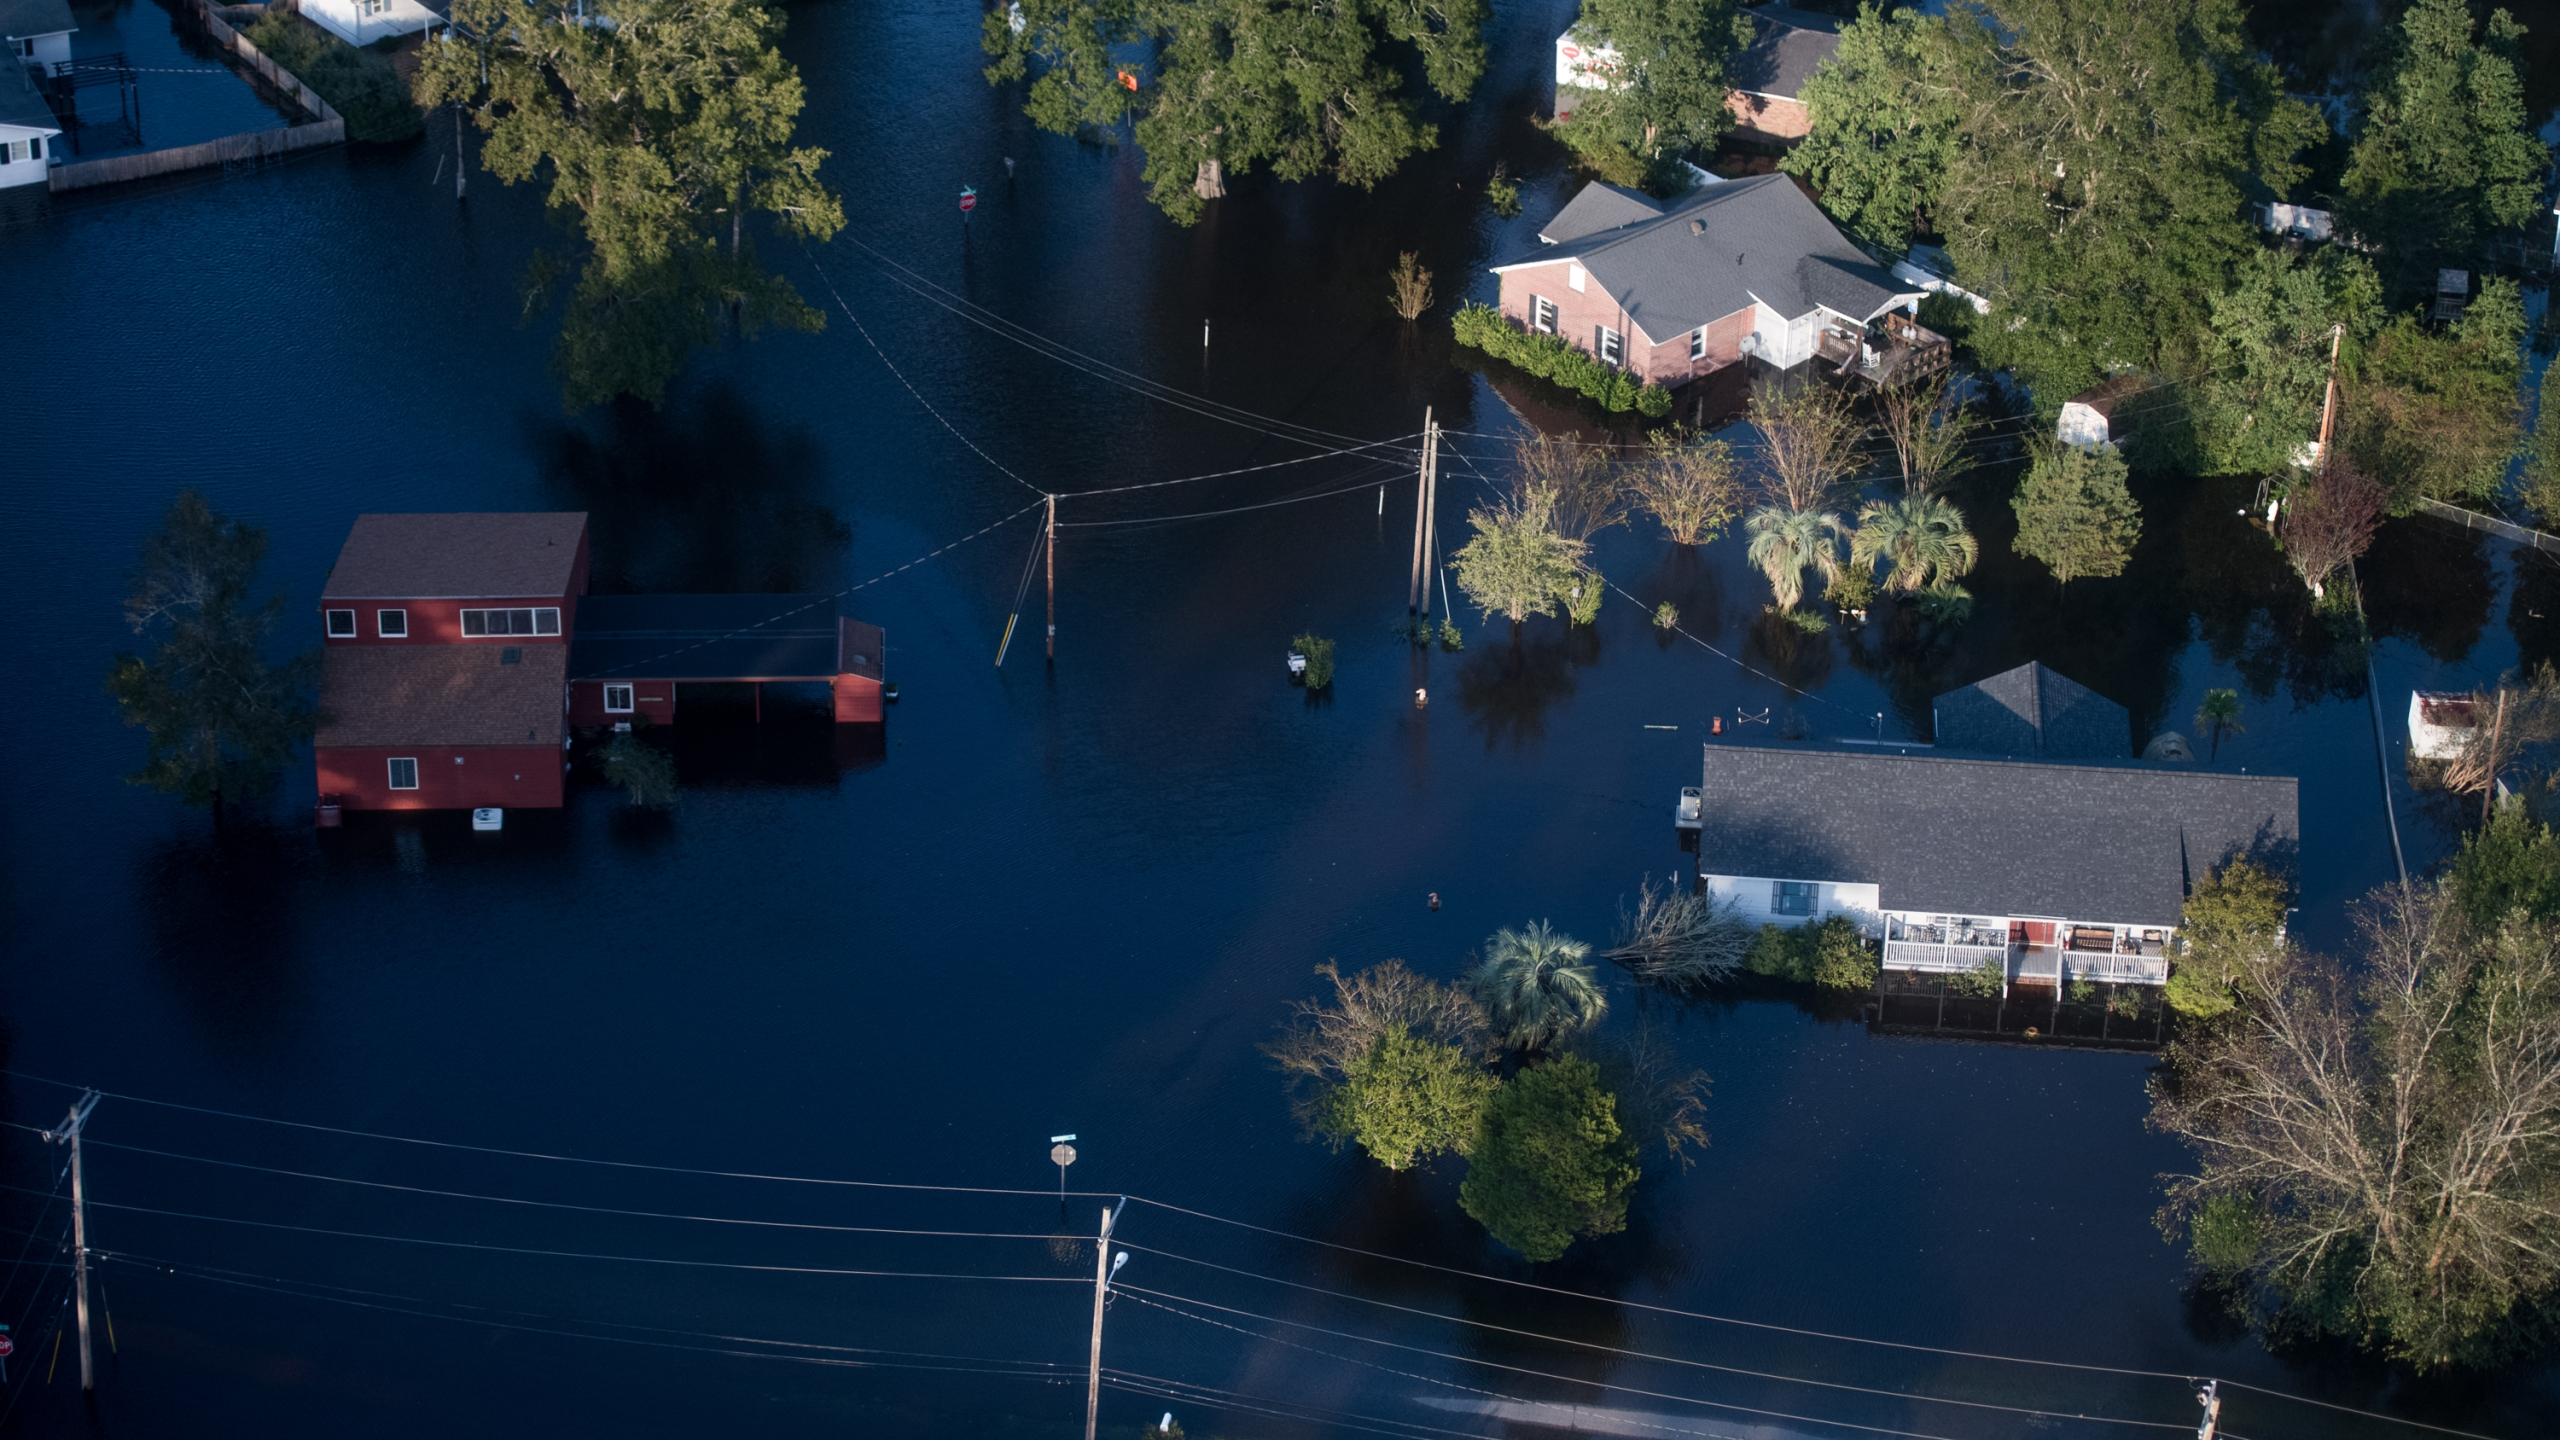 Homes are surrounded by floodwaters from Hurricane Florence on Sept. 17, 2018 in Conway, South Carolina. (Credit: Sean Rayford/Getty Images)